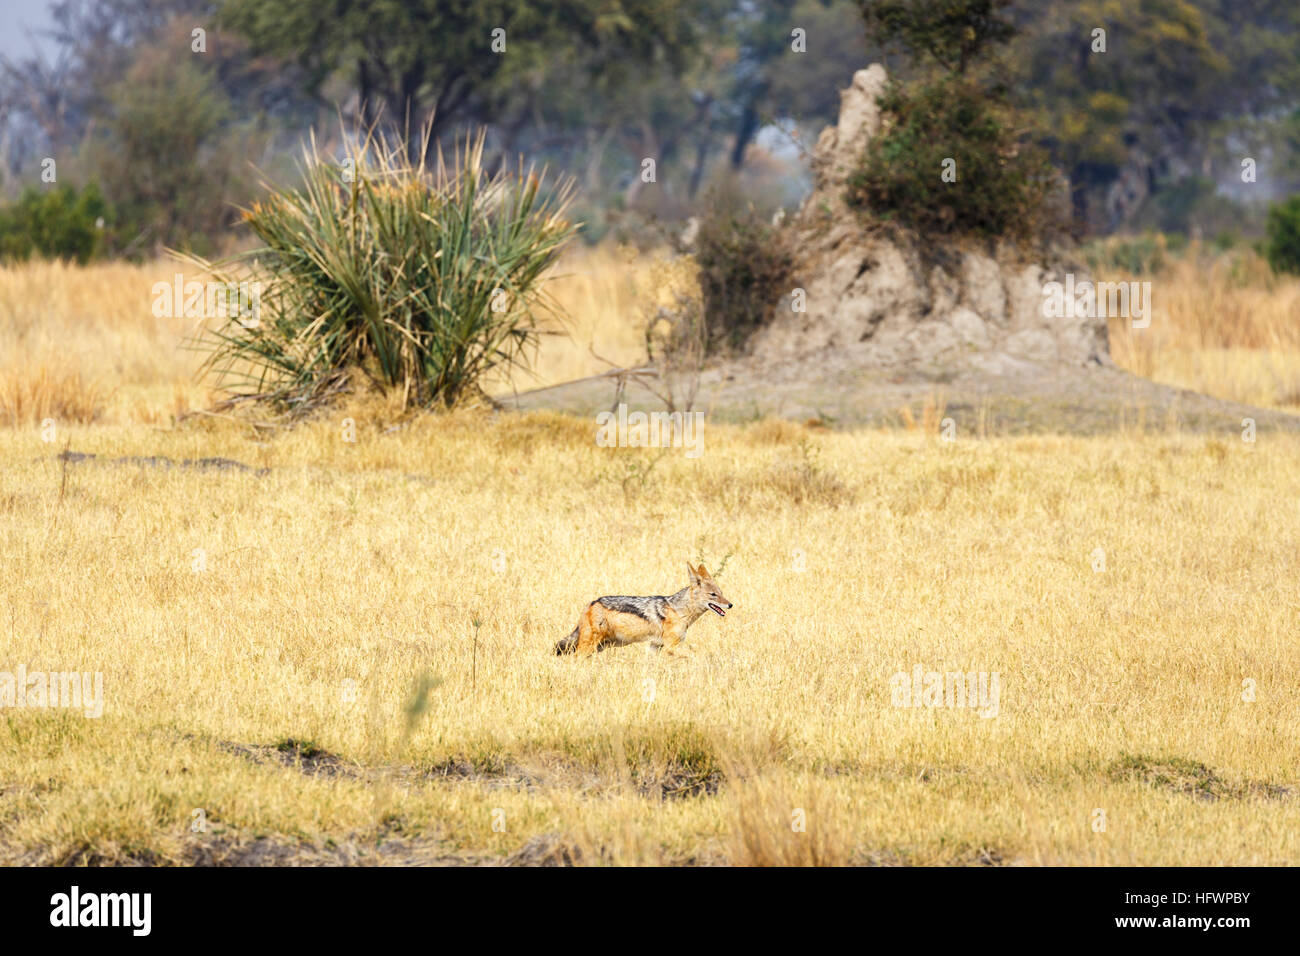 Black-backed jackal (Canis mesomelas) in front of a termite mound, Sandibe Camp, by the Moremi Game Reserve, Okavango - Stock Image